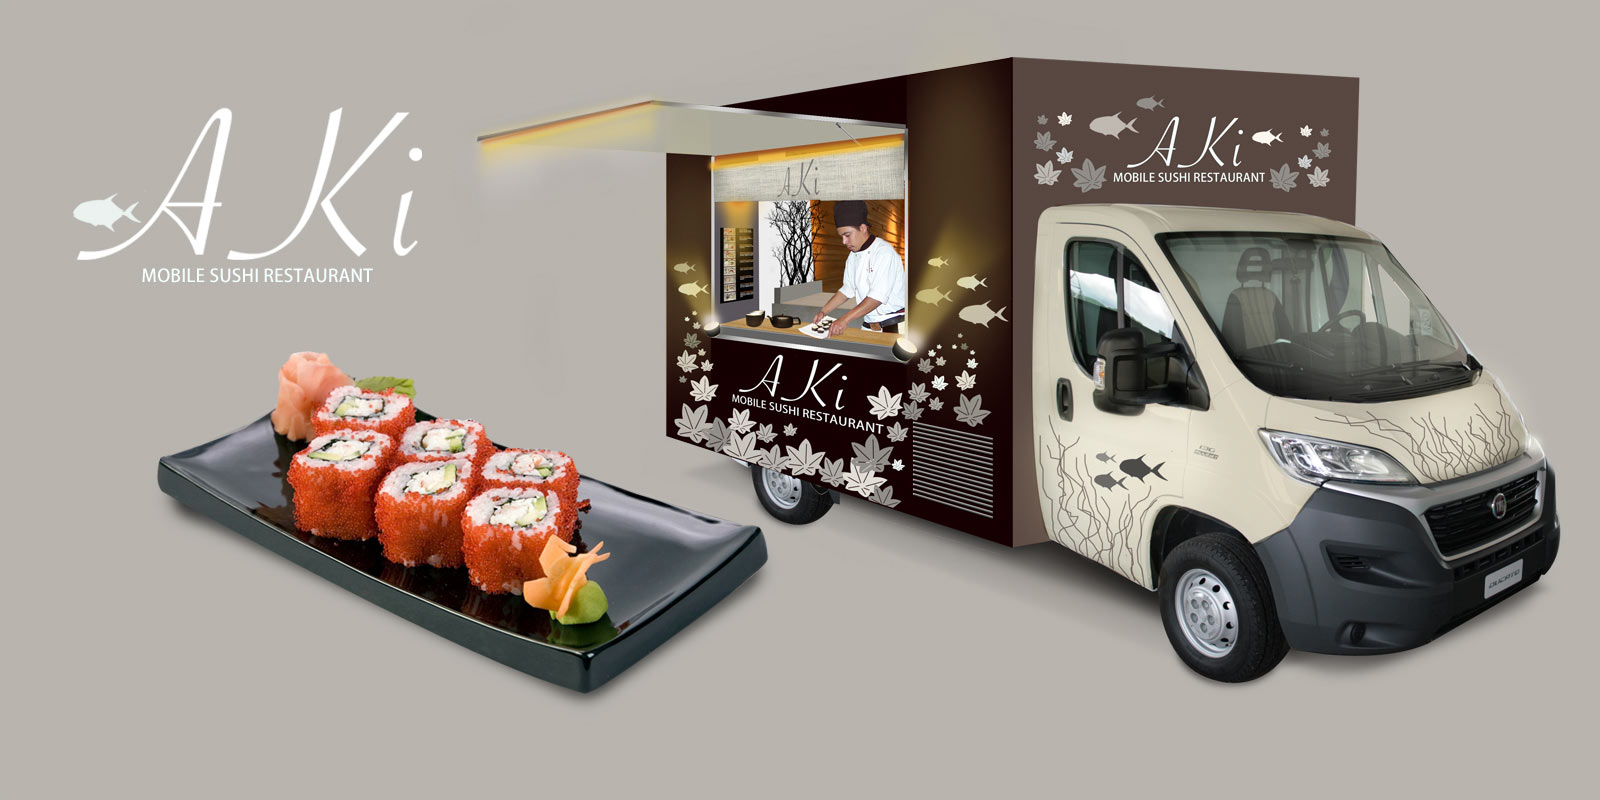 Japanese Cuisine Food Truck Food Truck Resti Spa Extensive